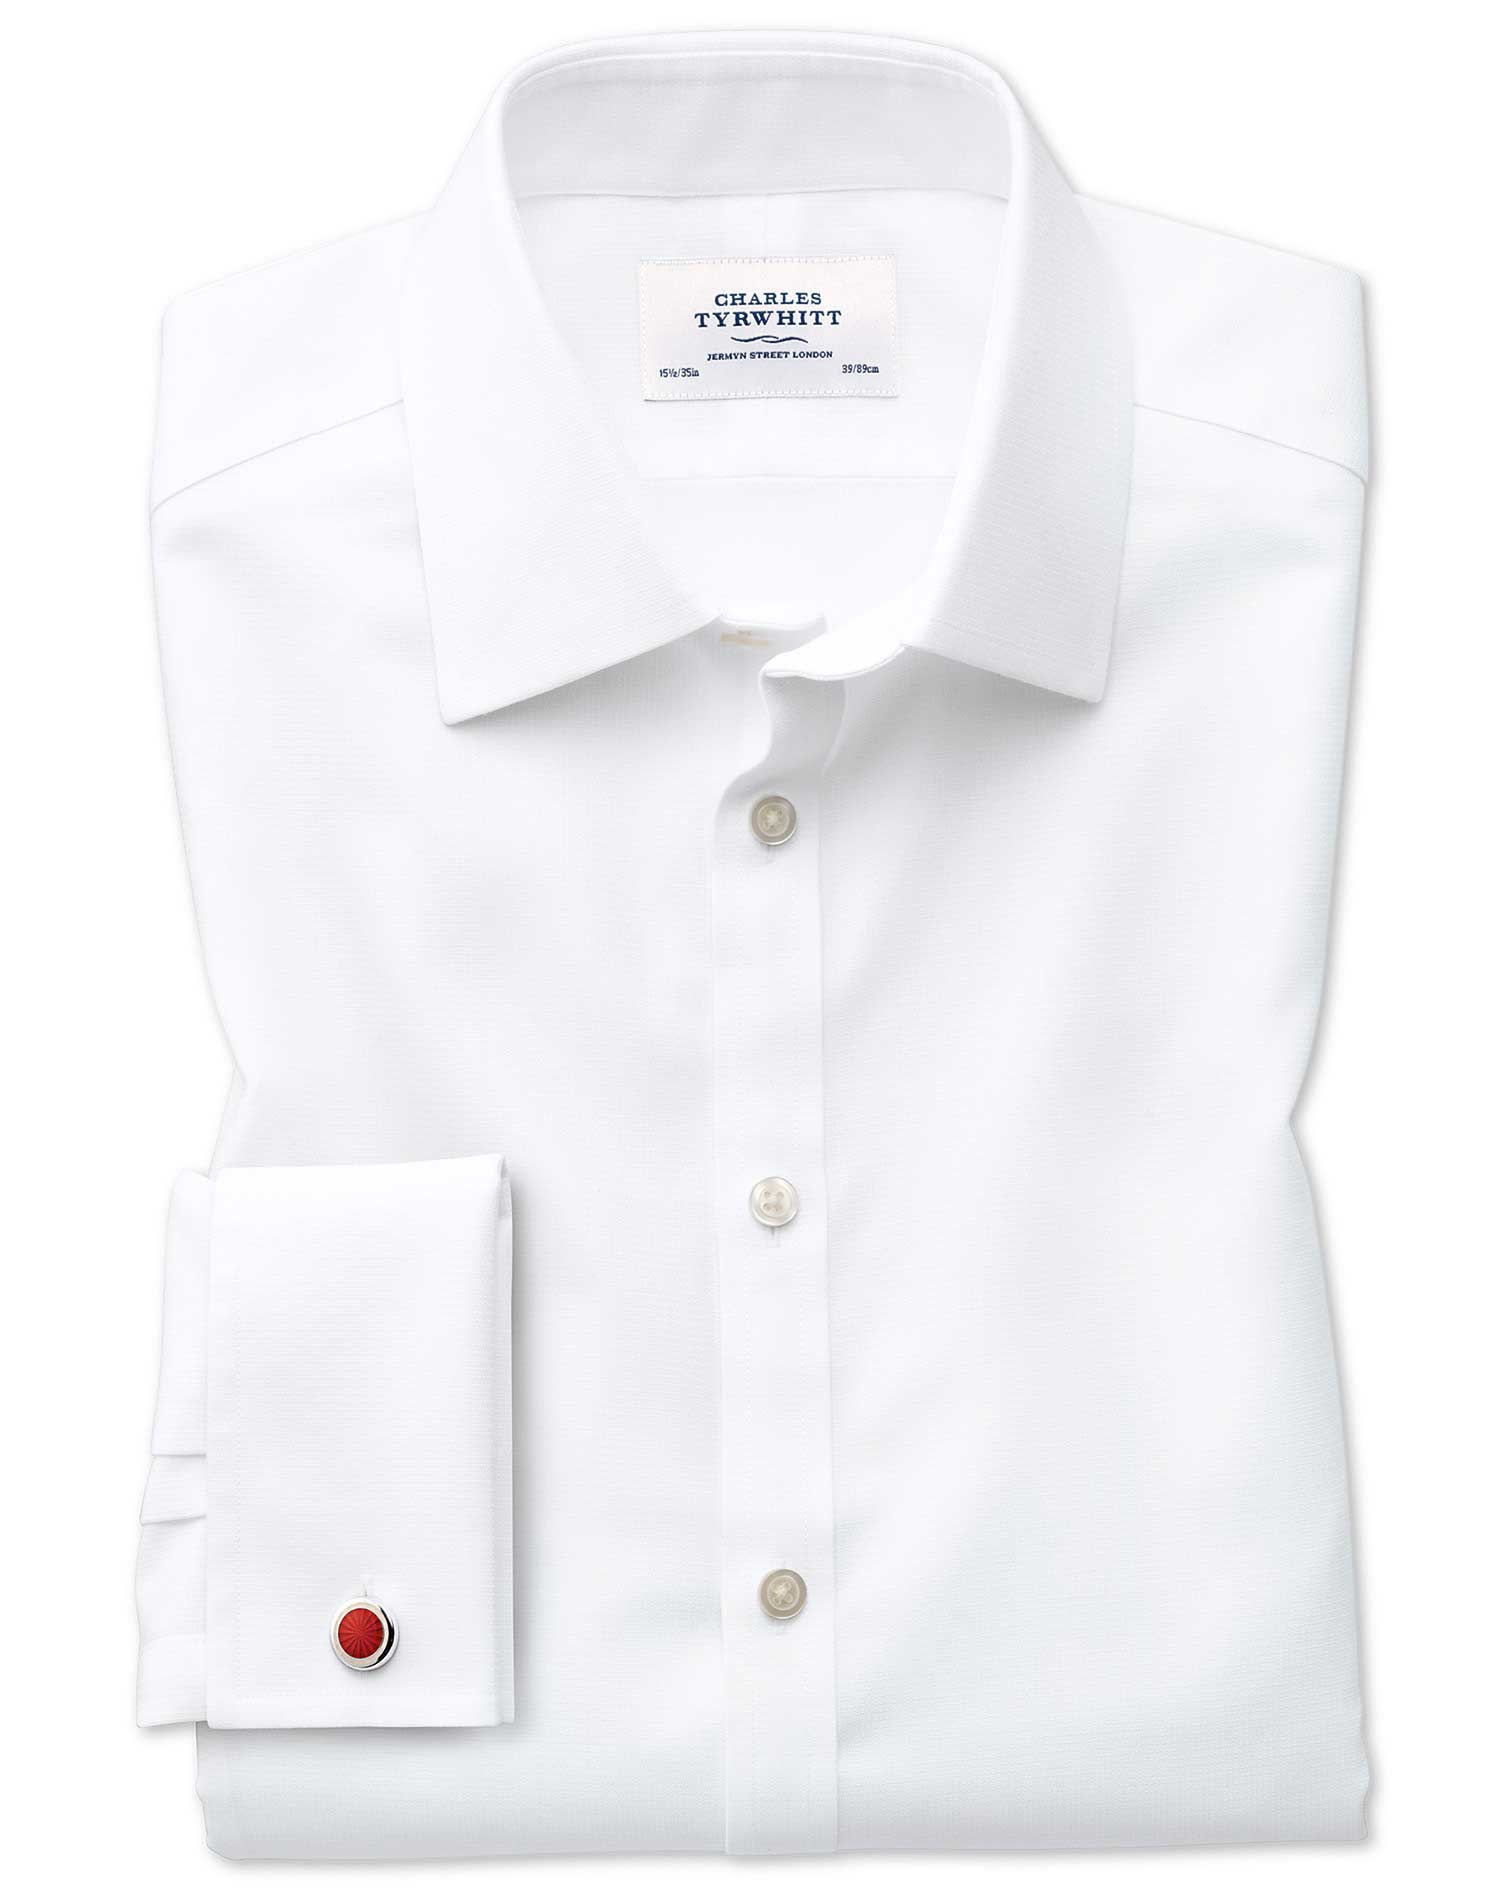 Slim Fit Non-Iron Square Weave White Cotton Formal Shirt Double Cuff Size 16.5/33 by Charles Tyrwhit